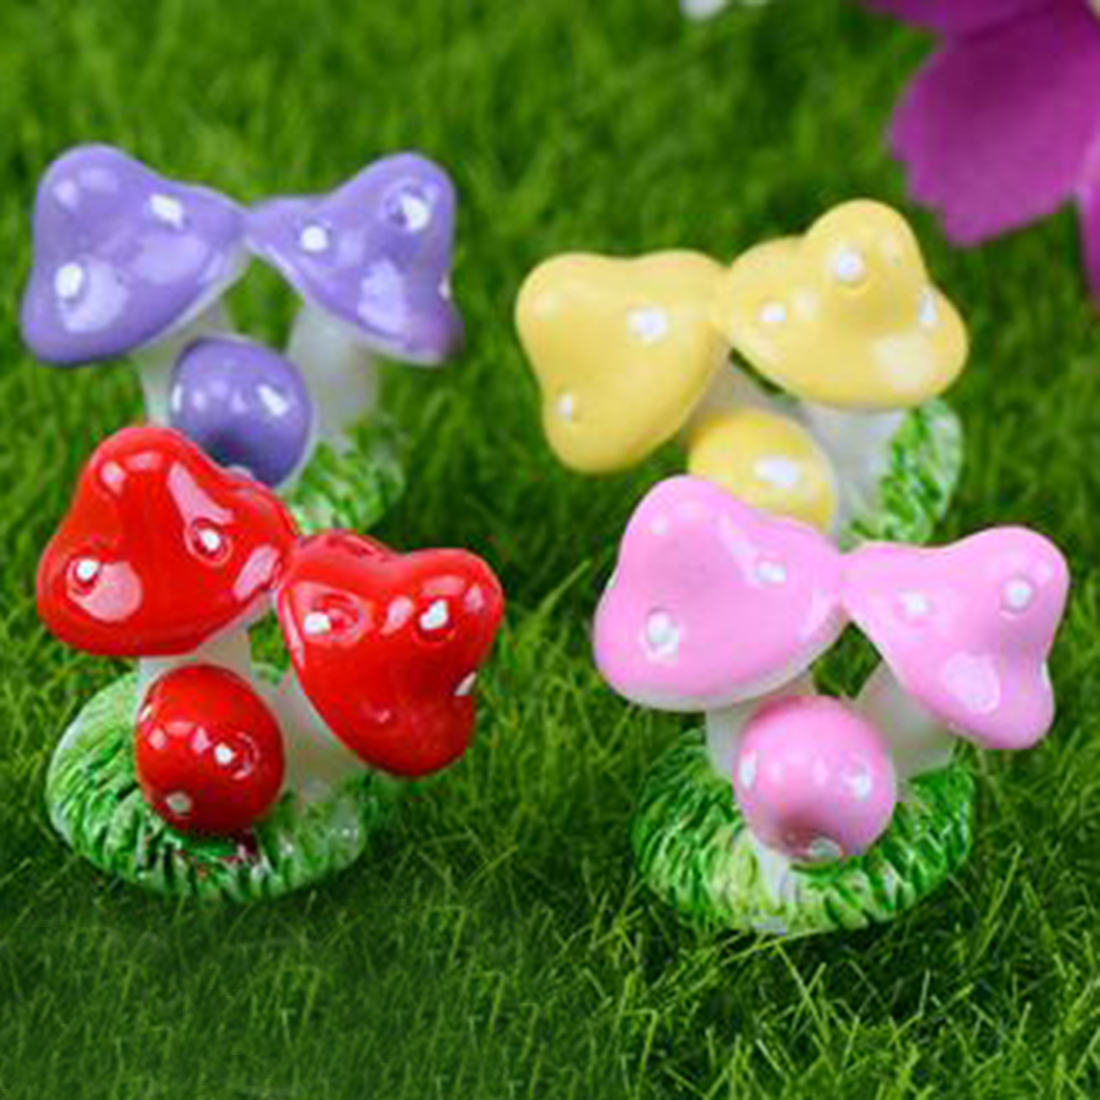 Mini Small Mushroom Small Ornaments Three Mushrooms Fairy Decor Home Decor Miniature Gardening Accessories(China (Mainland))